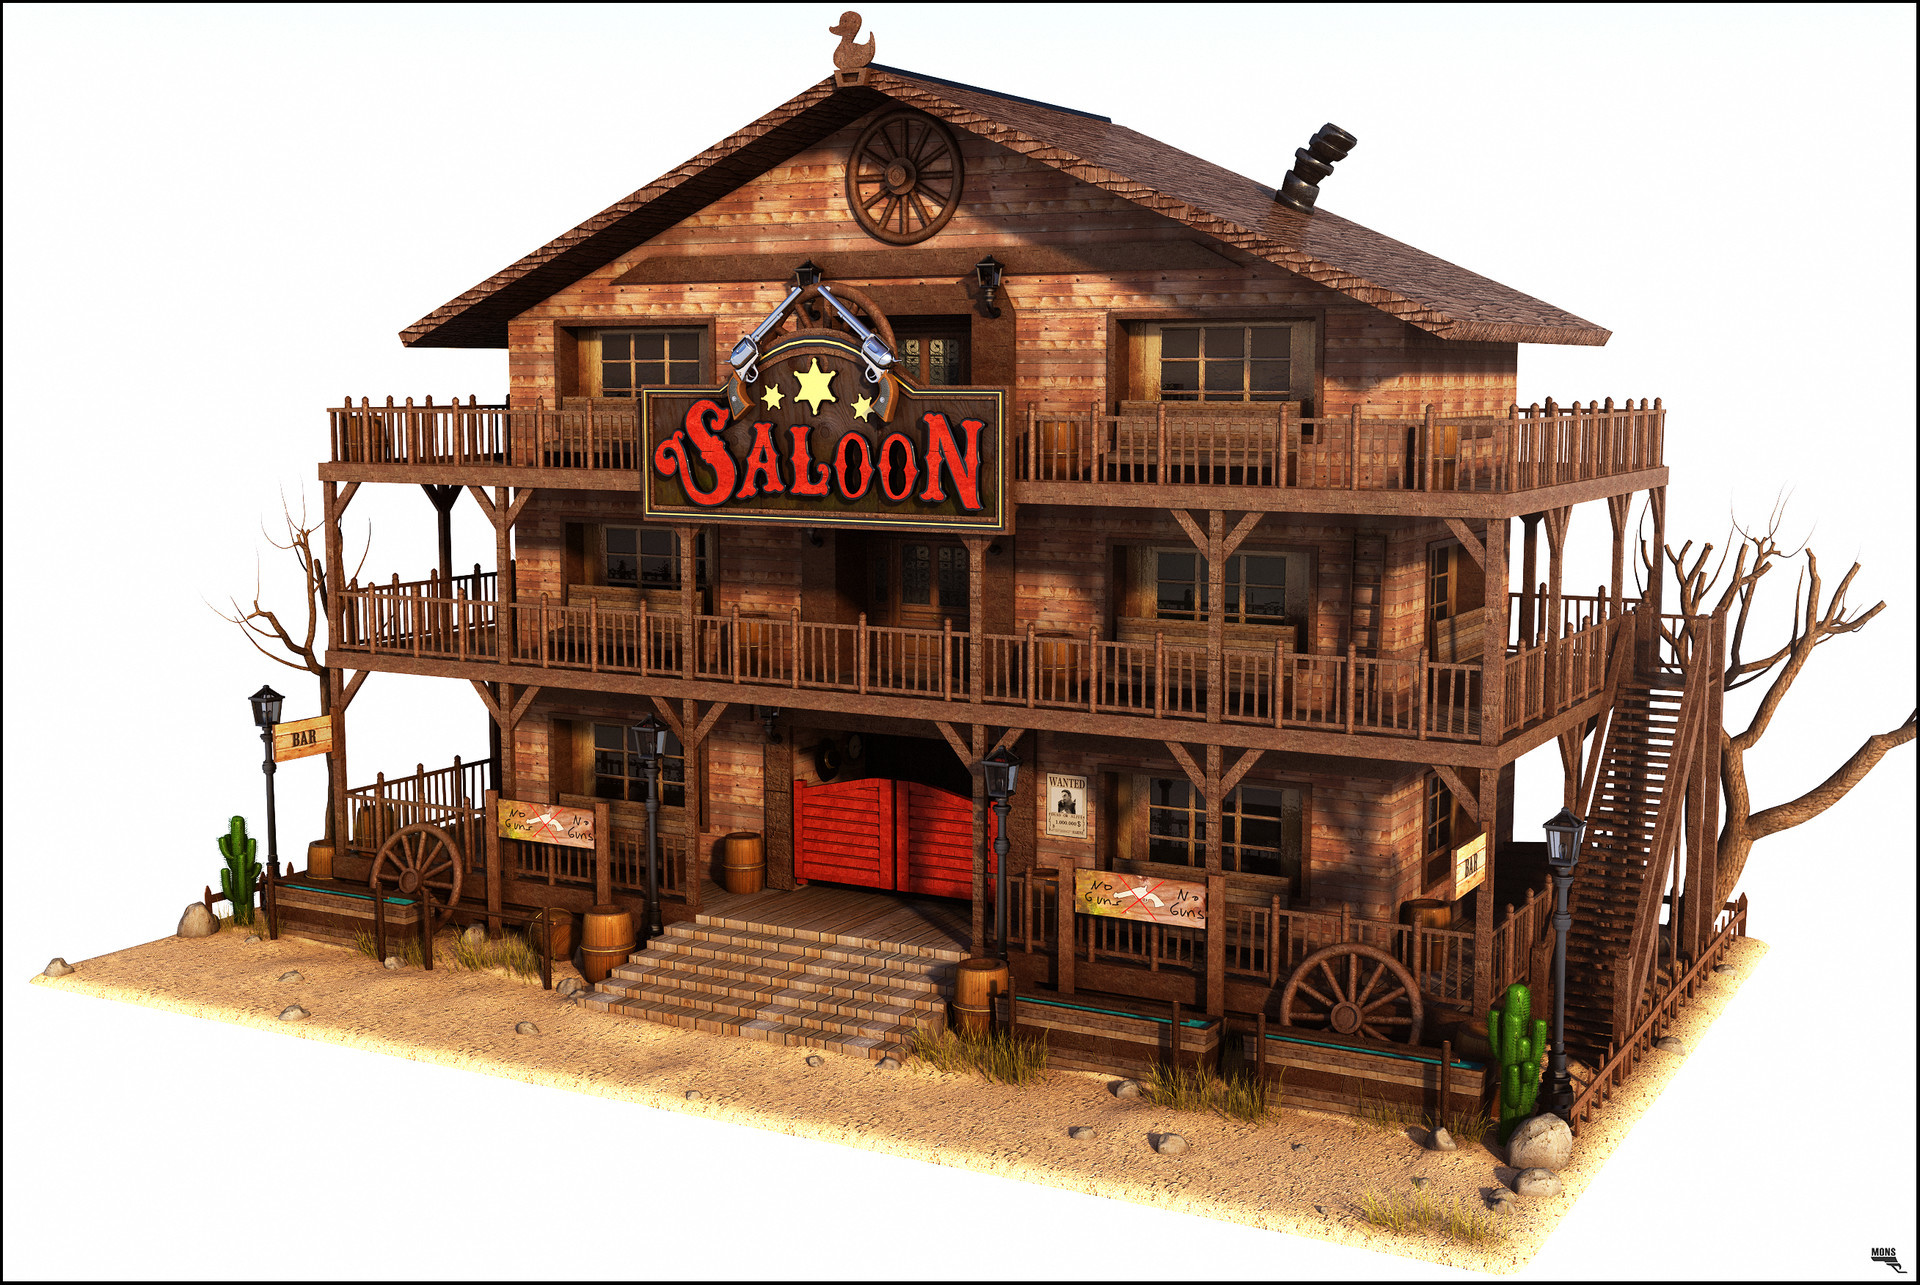 Marc mons marc mons pngwesternsaloon